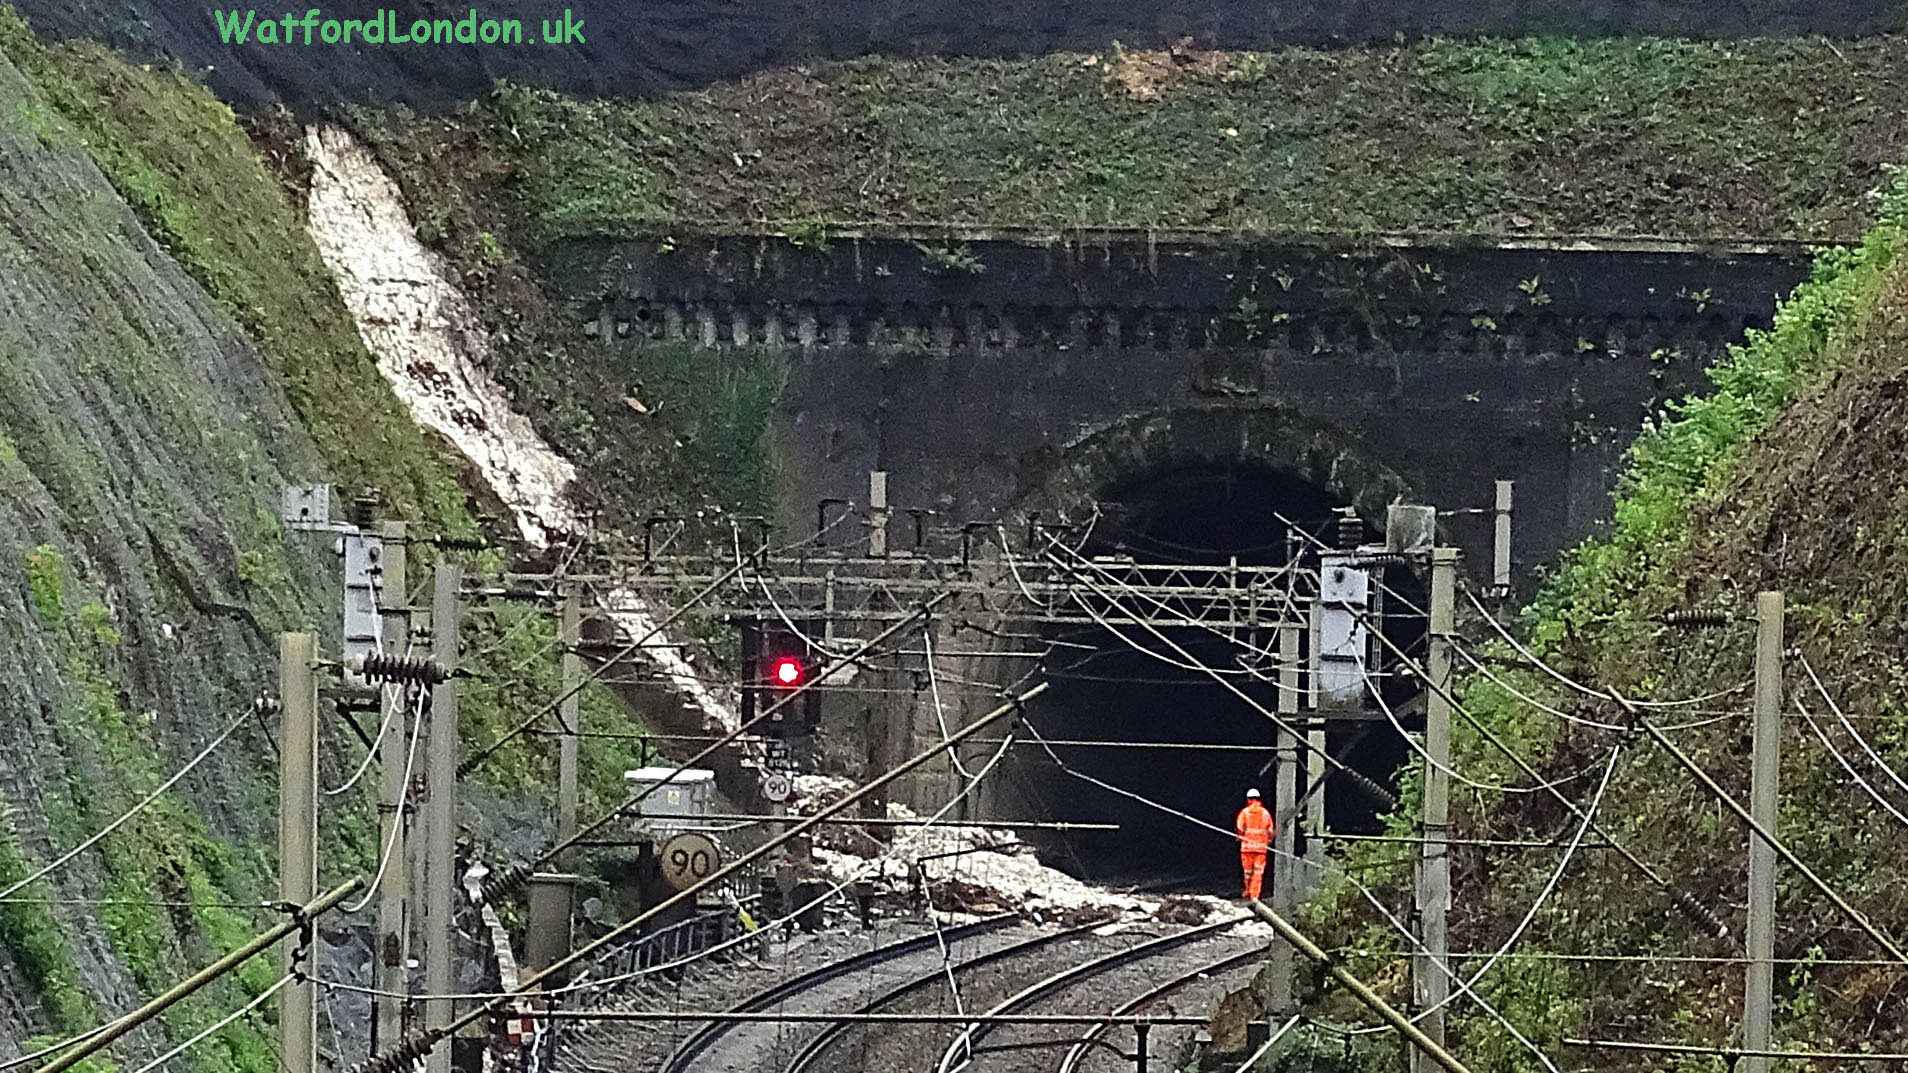 Heavy Rain Landslide Derails Train at Watford Tunnel